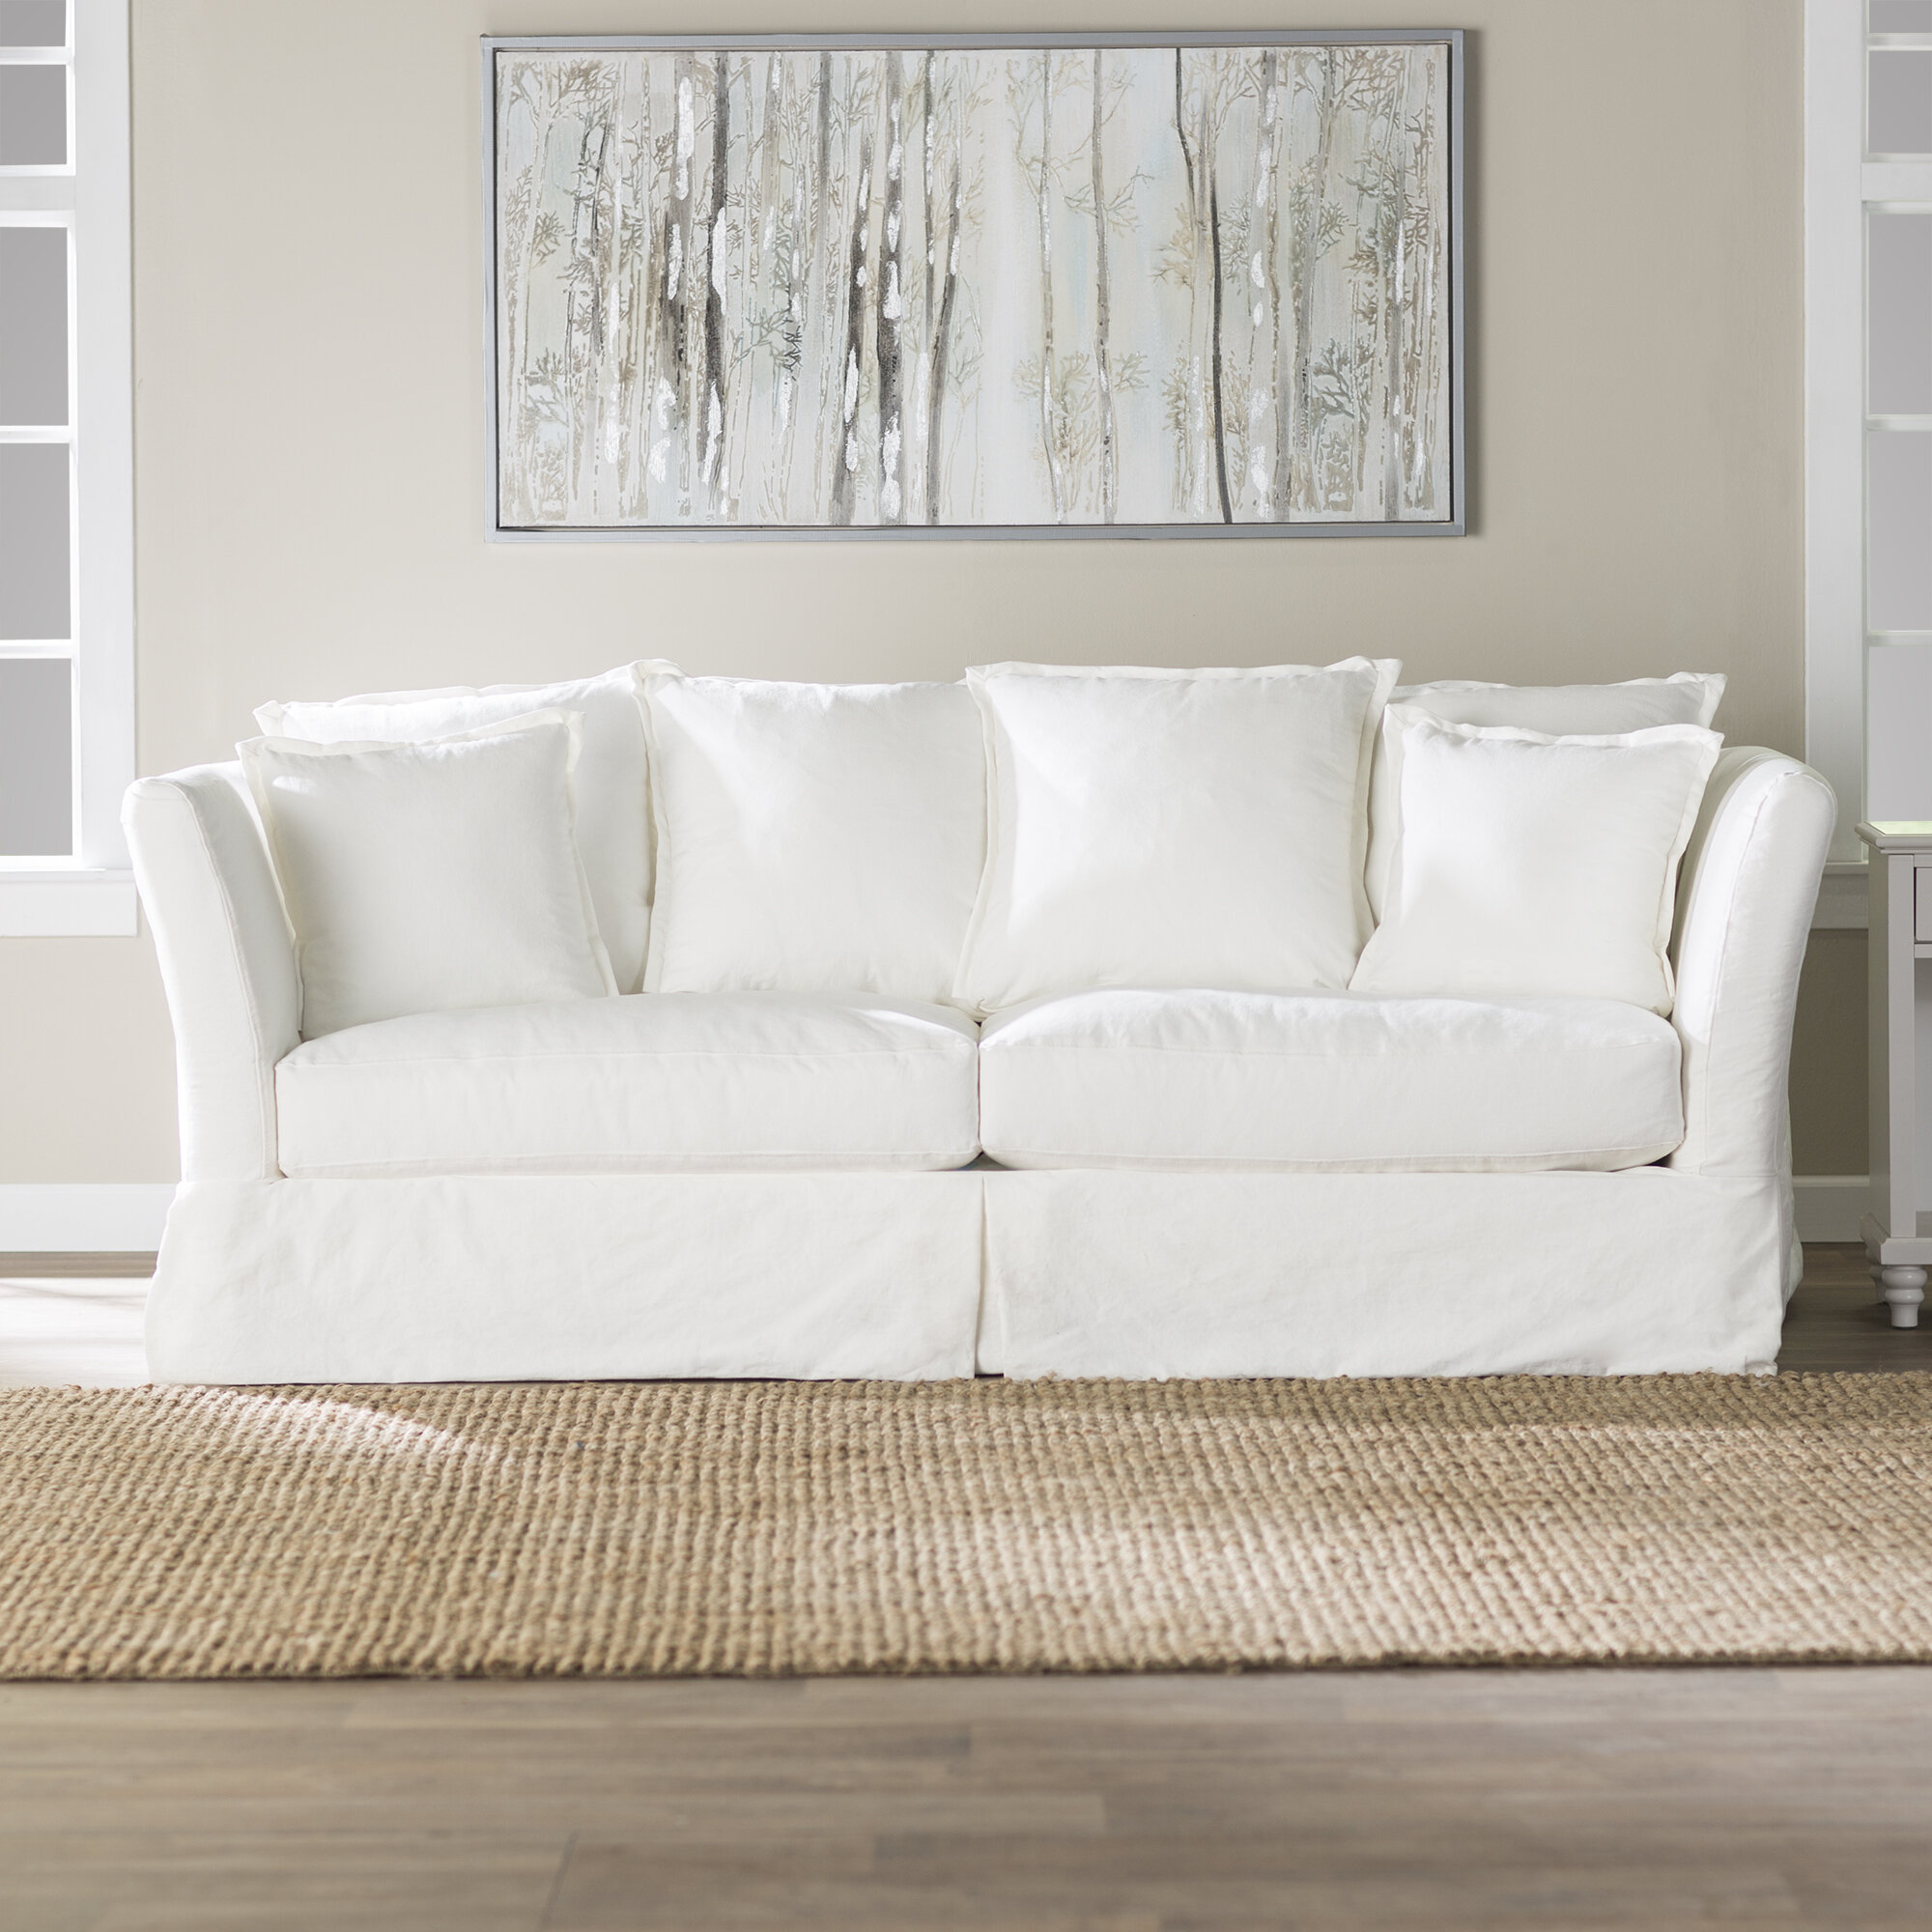 birch lane sofa. Birch Lane Sofa